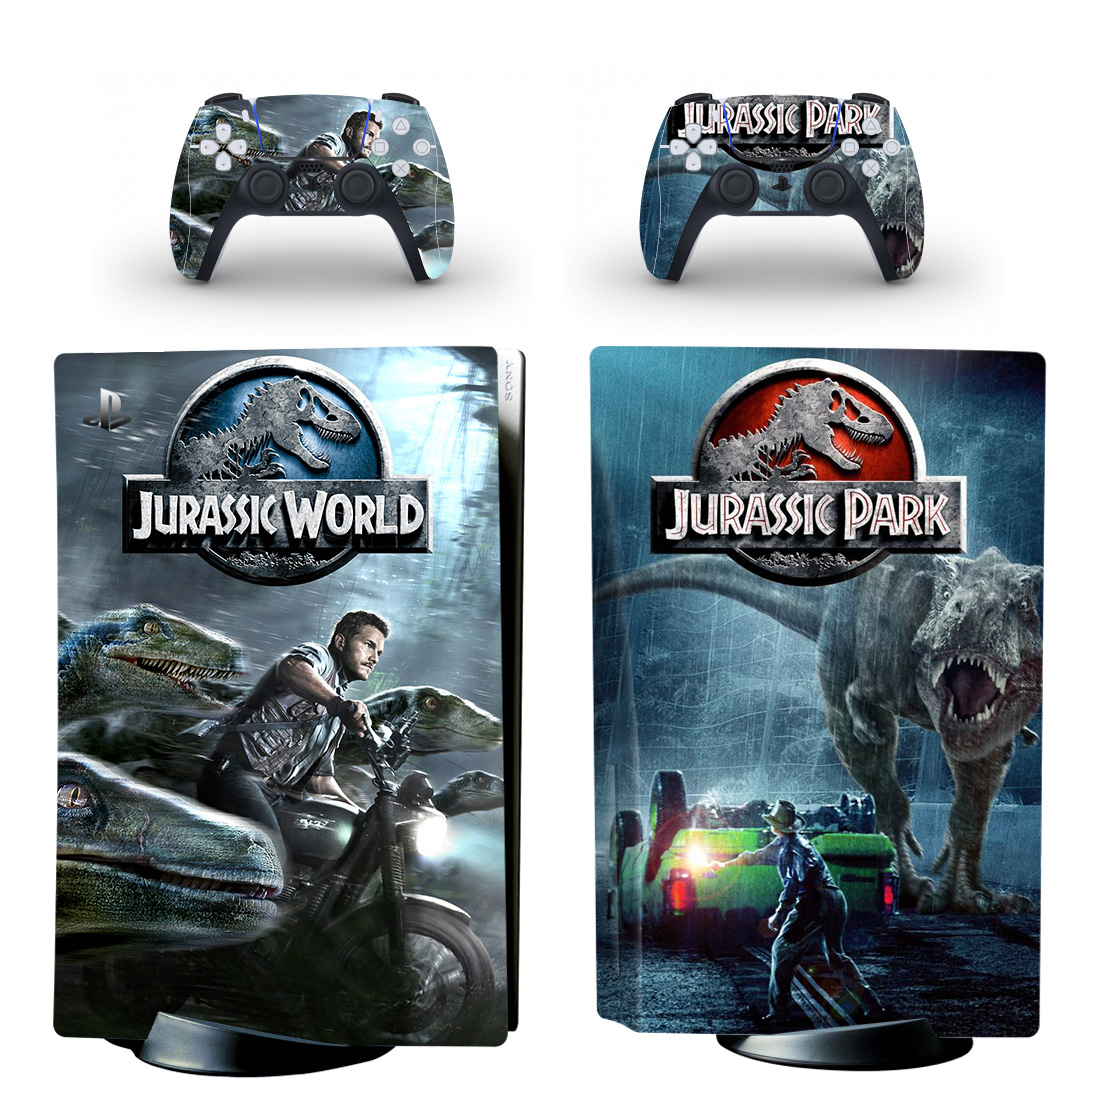 Jurassic World Vs Jurassic Park Skin Sticker For PlayStation 5 And Controllers